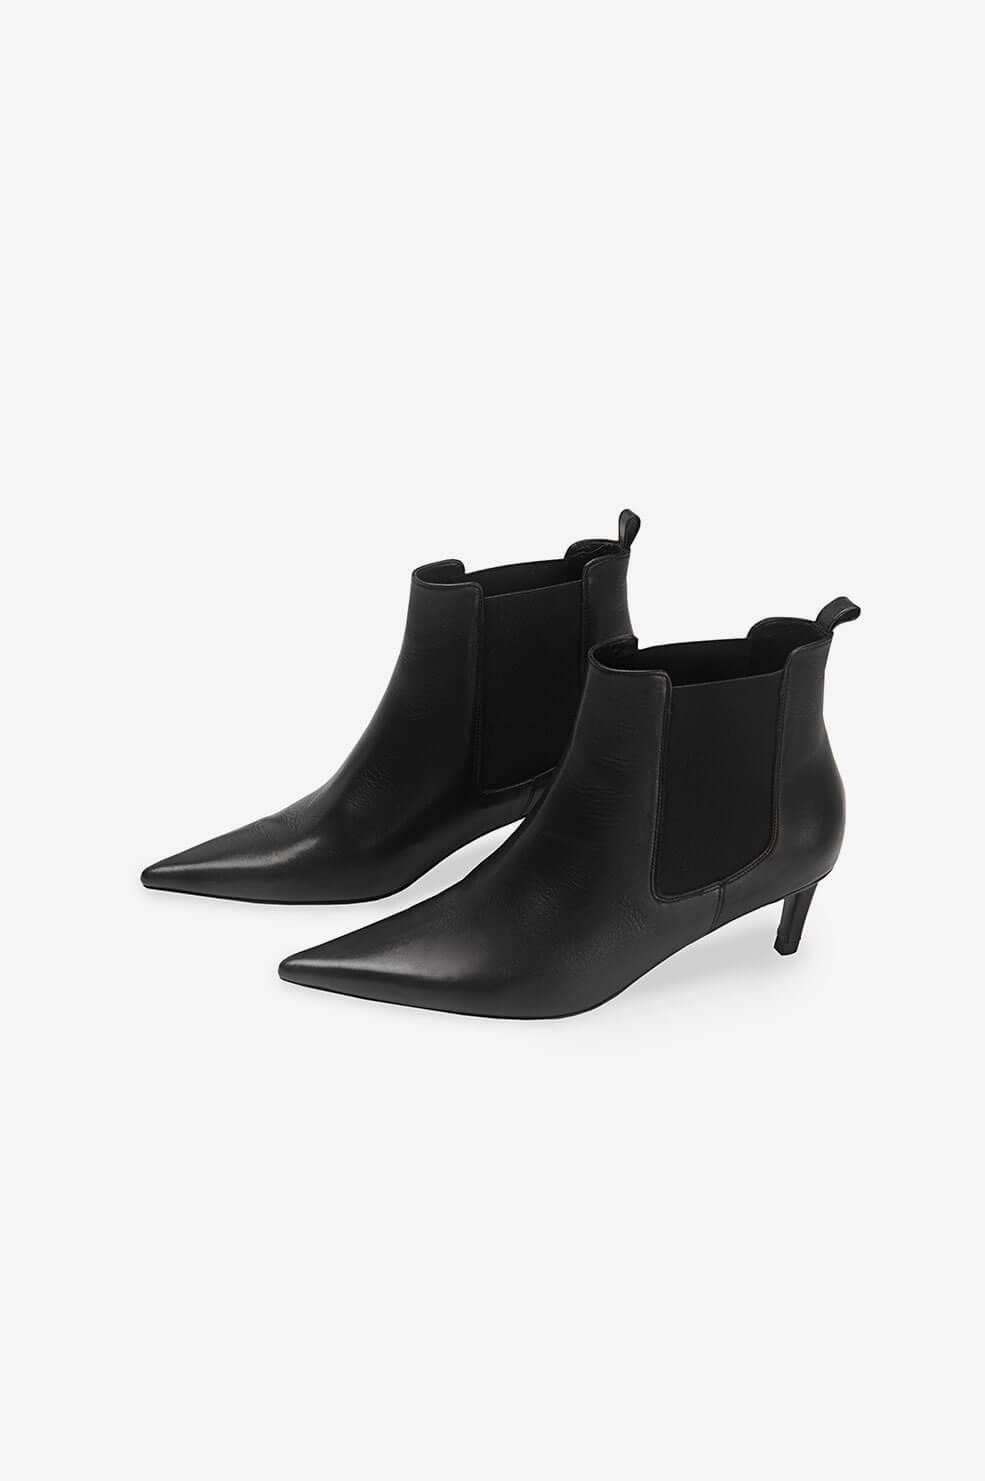 Stevie Boots - Black Leather 1